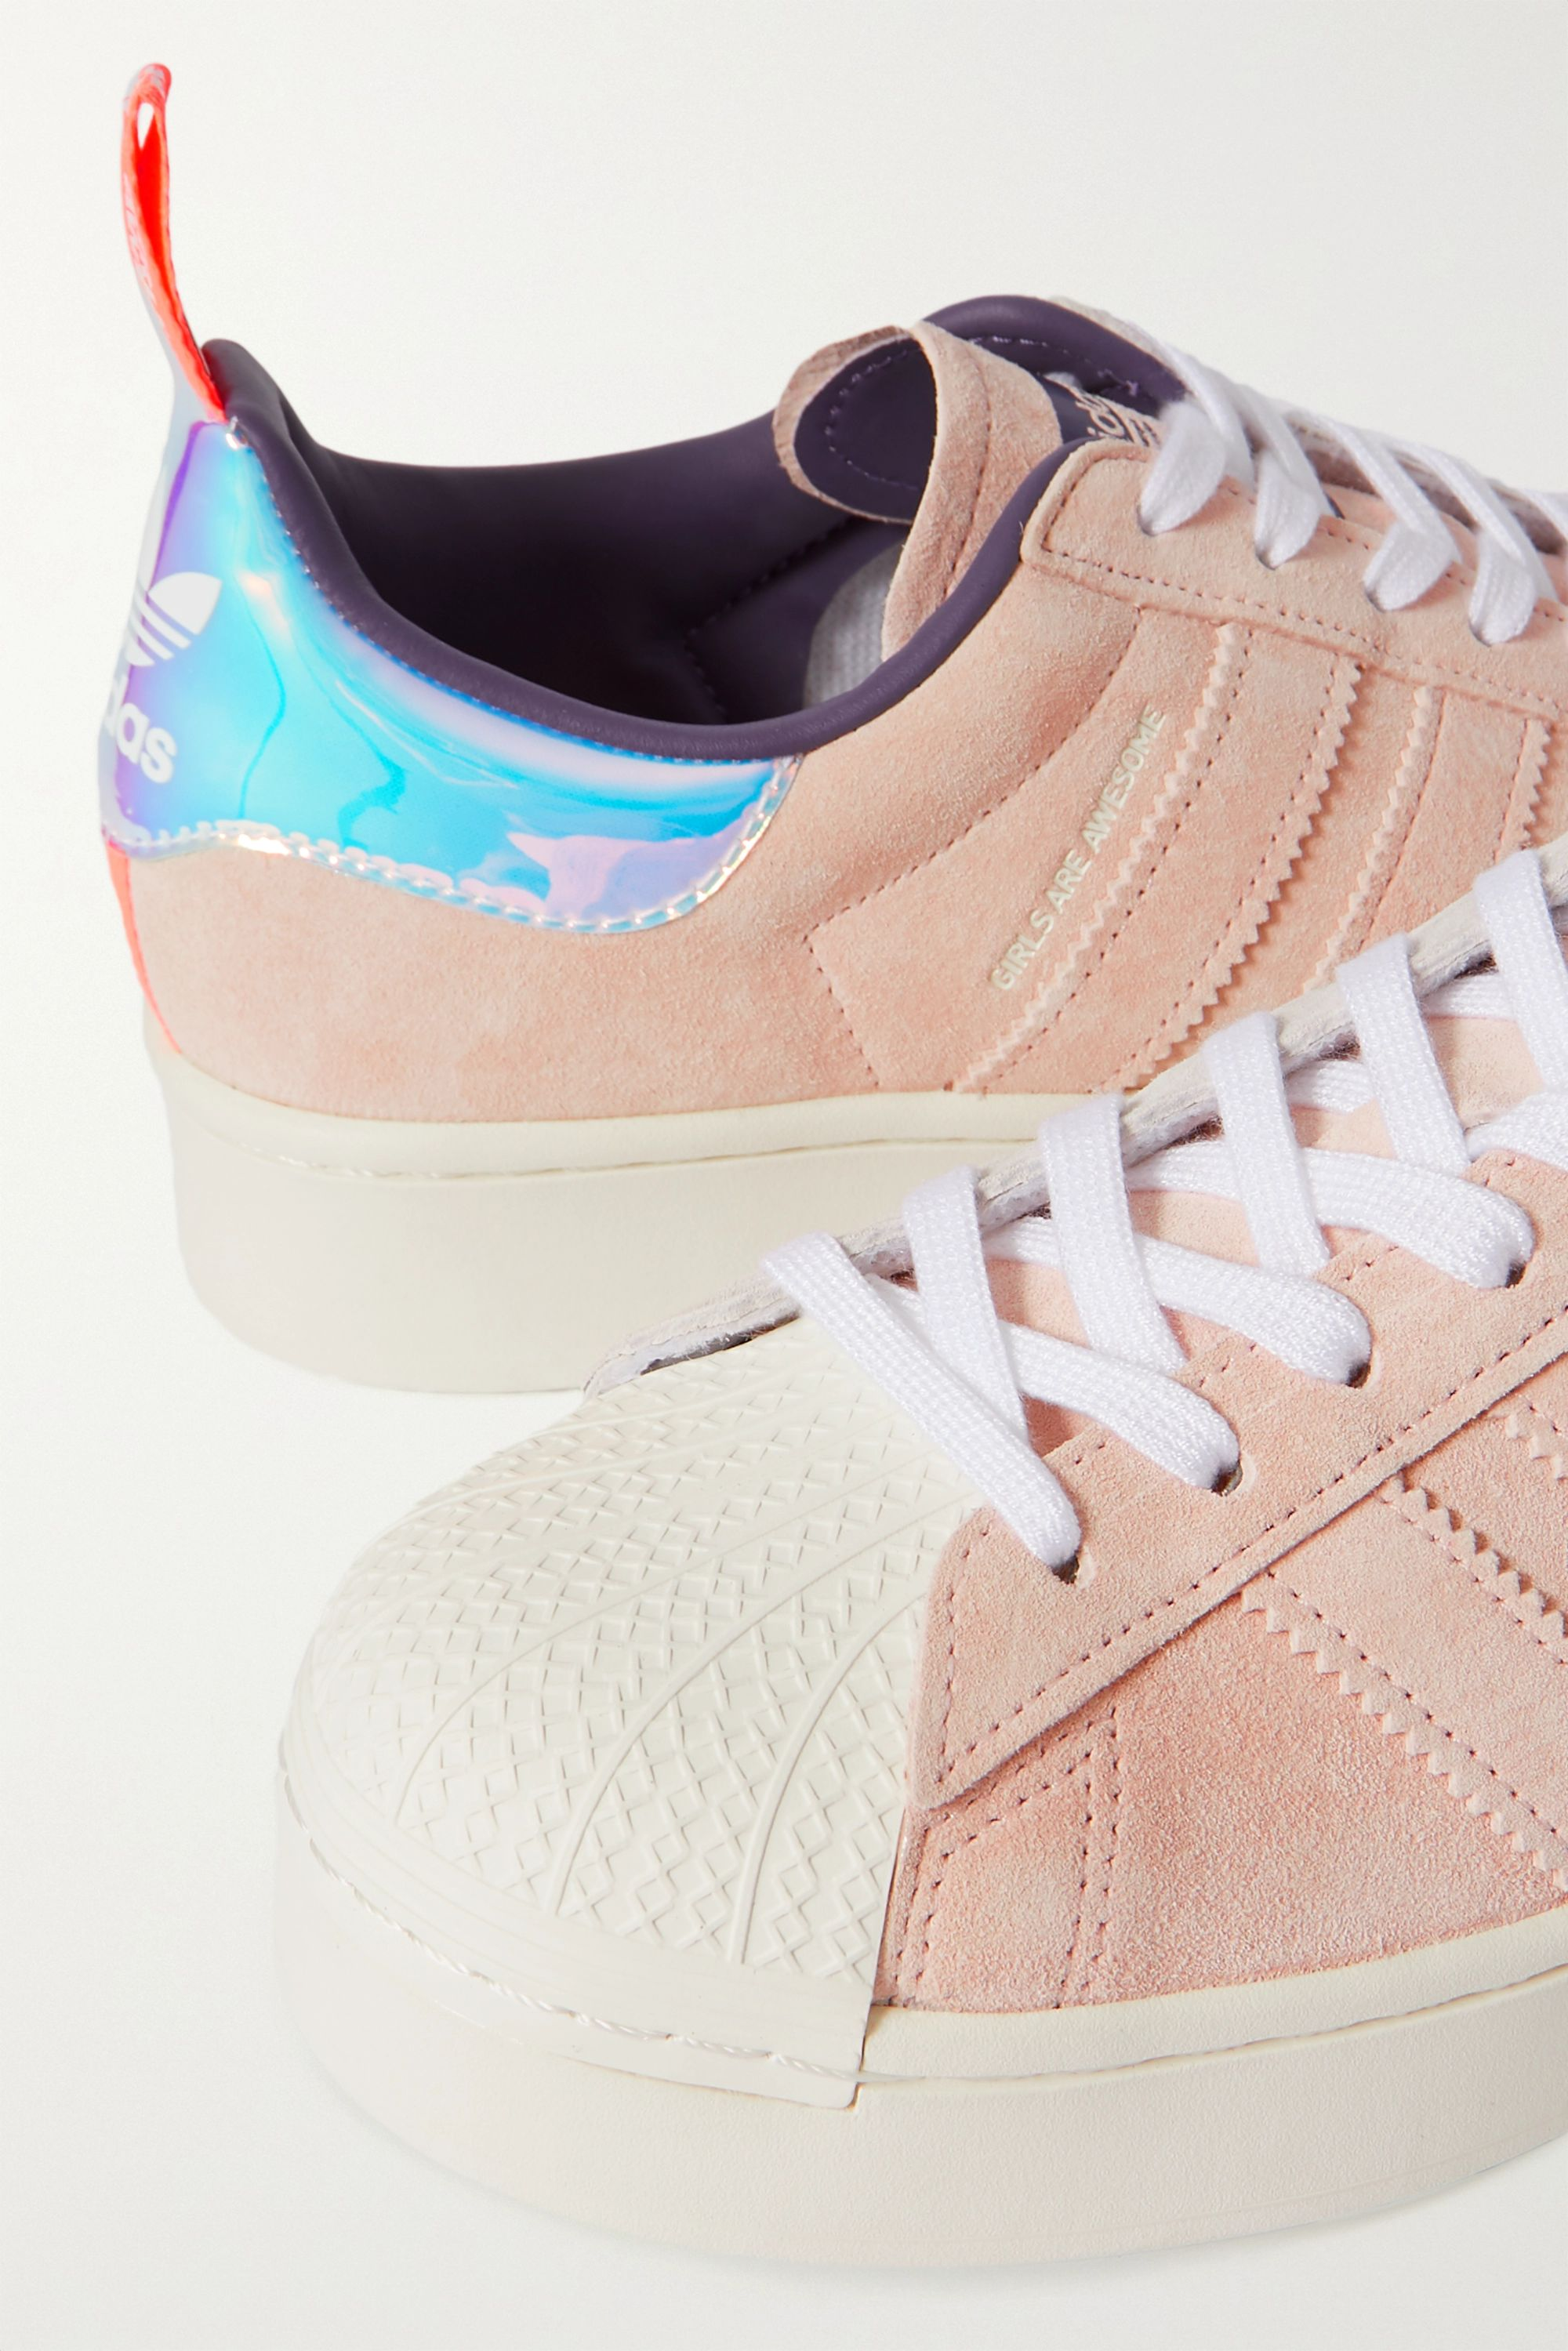 adidas Originals + Girls Are Awesome Superstar metallic-trimmed suede sneakers